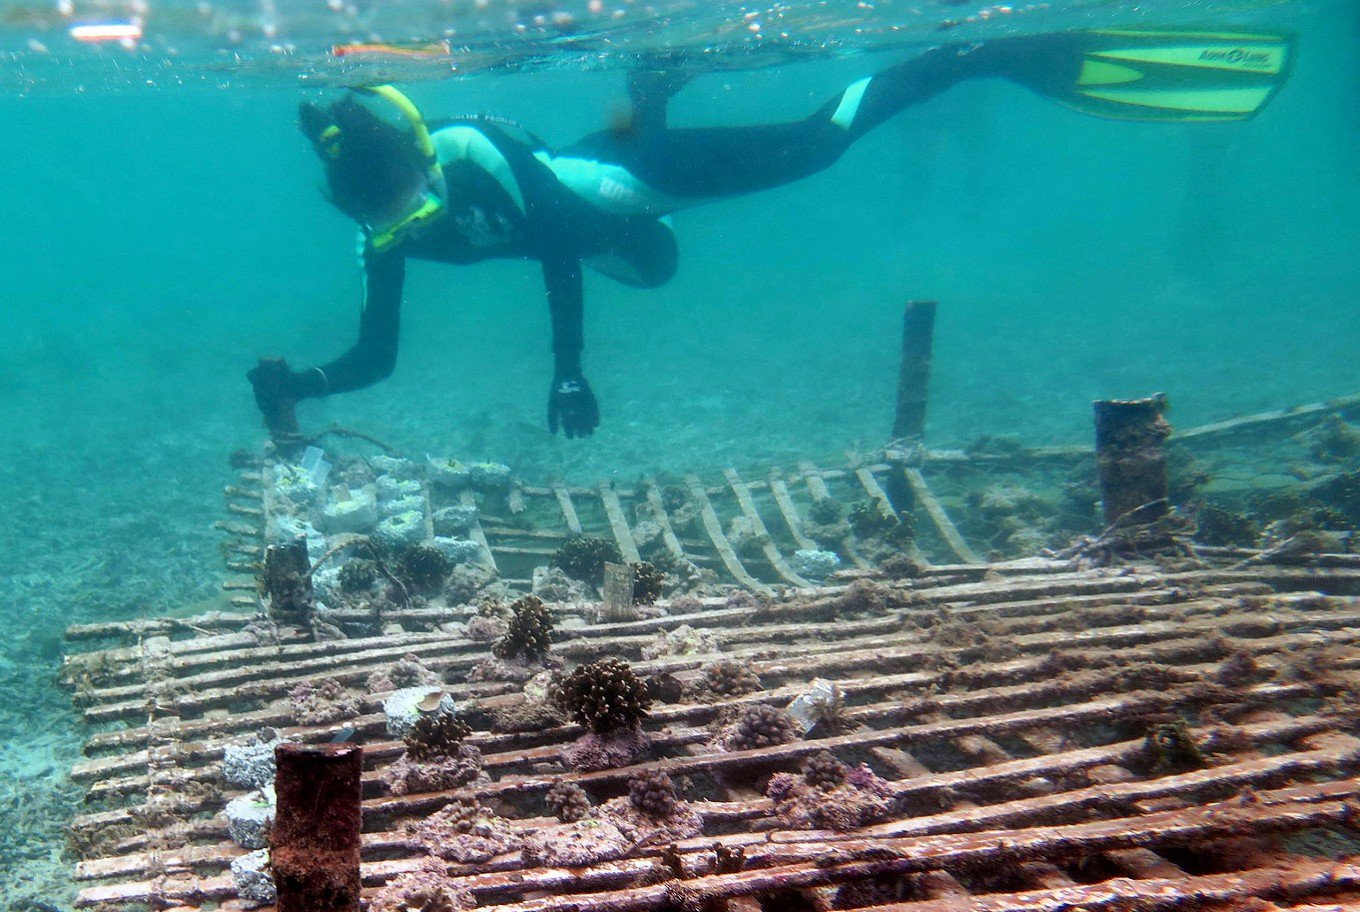 Bali Coral Reef Conservation Indonesia